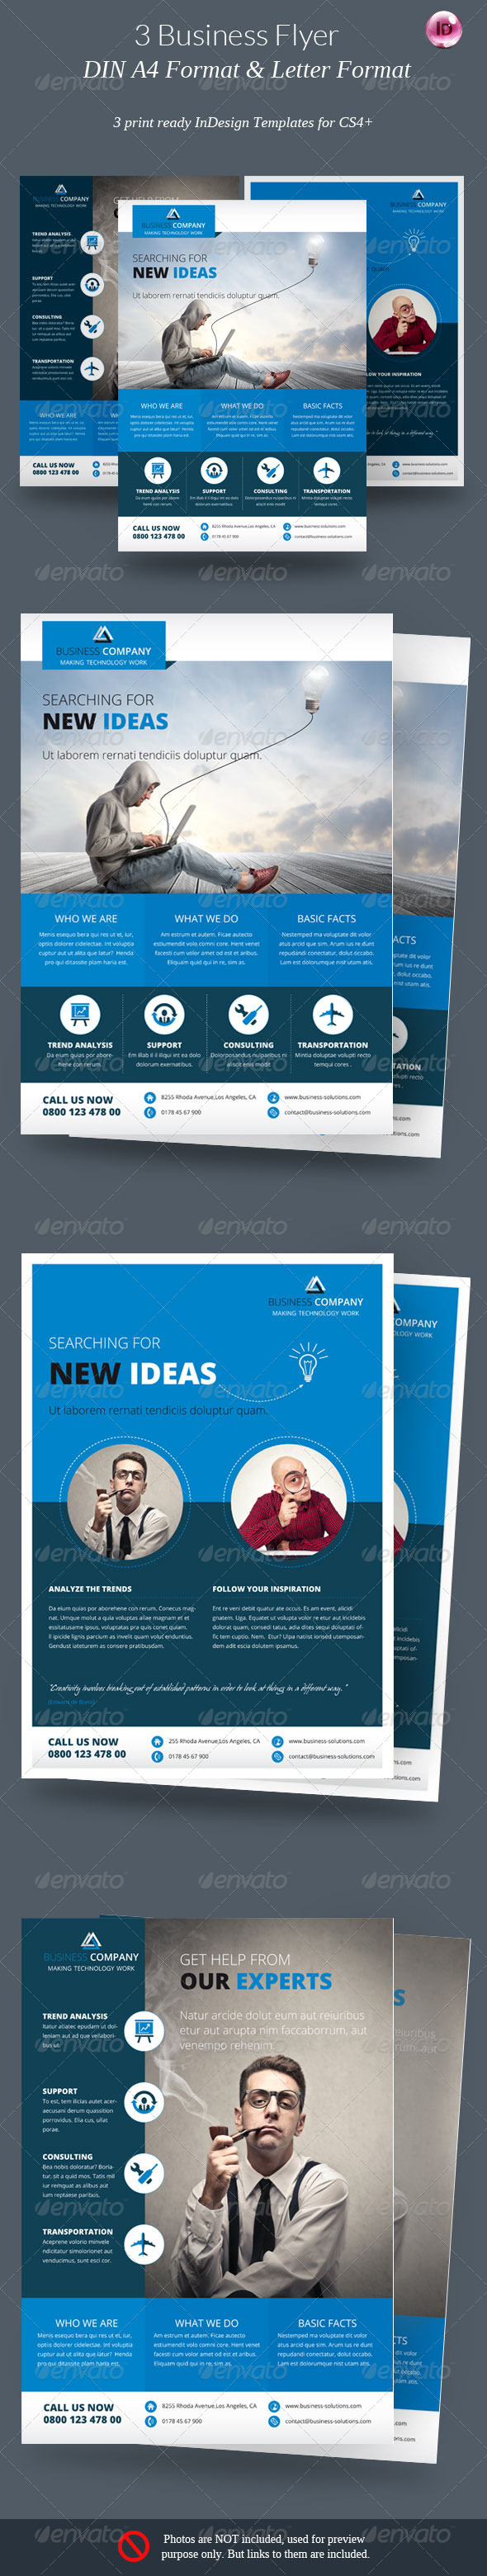 3 Business Flyer - Corporate Flyers